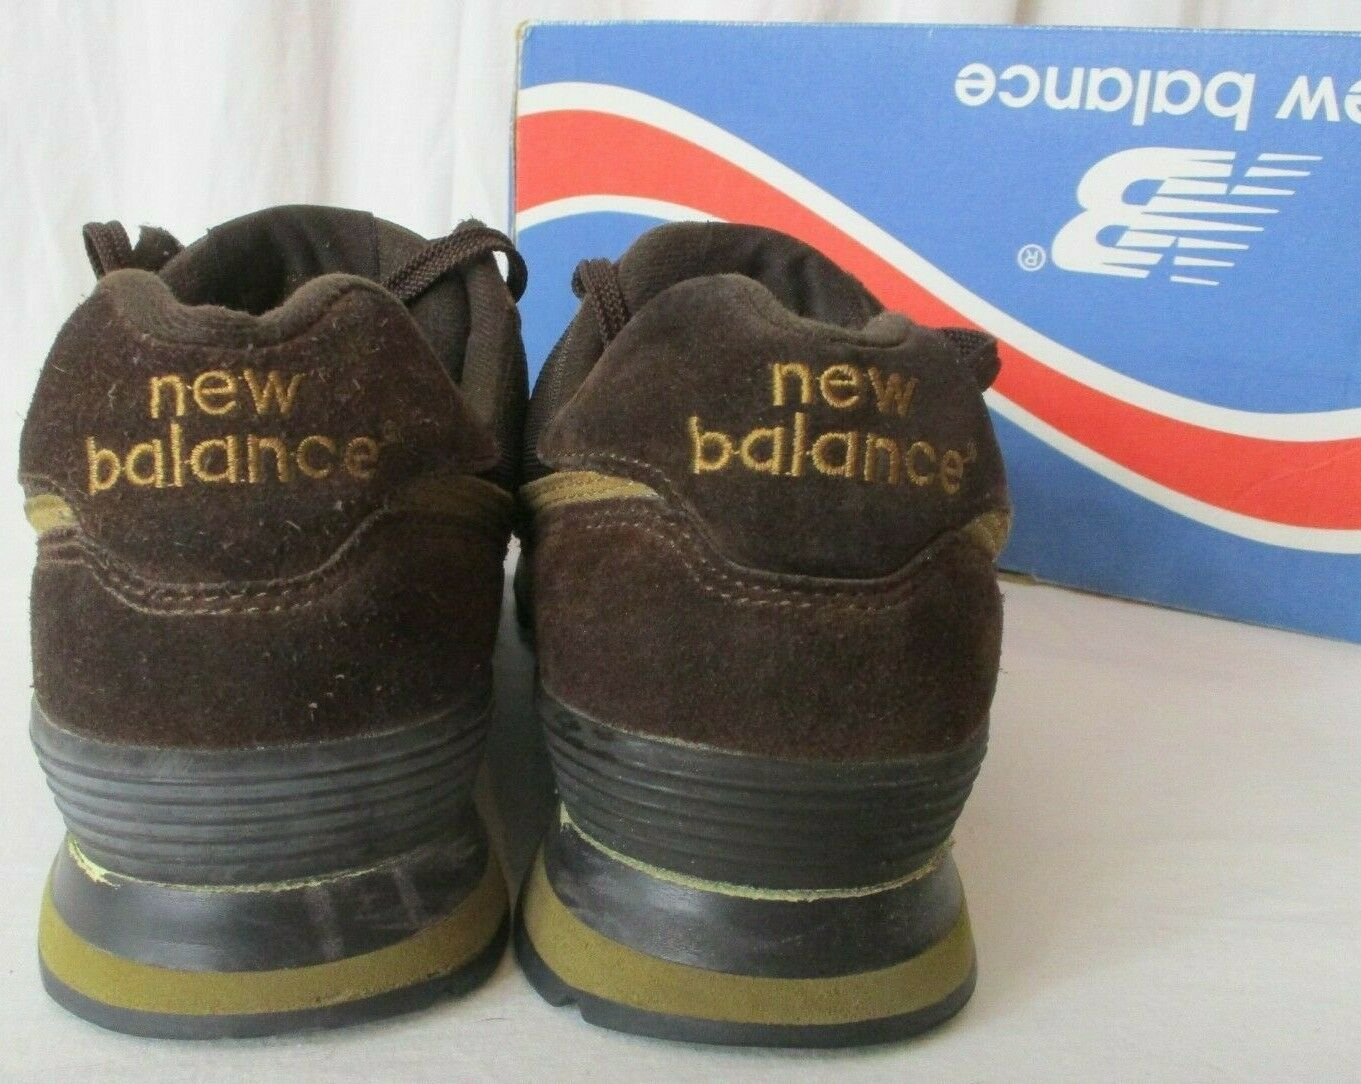 New Balance Men 10 M574BS Encap Sneakers Shoes Chocolate Brown image 5